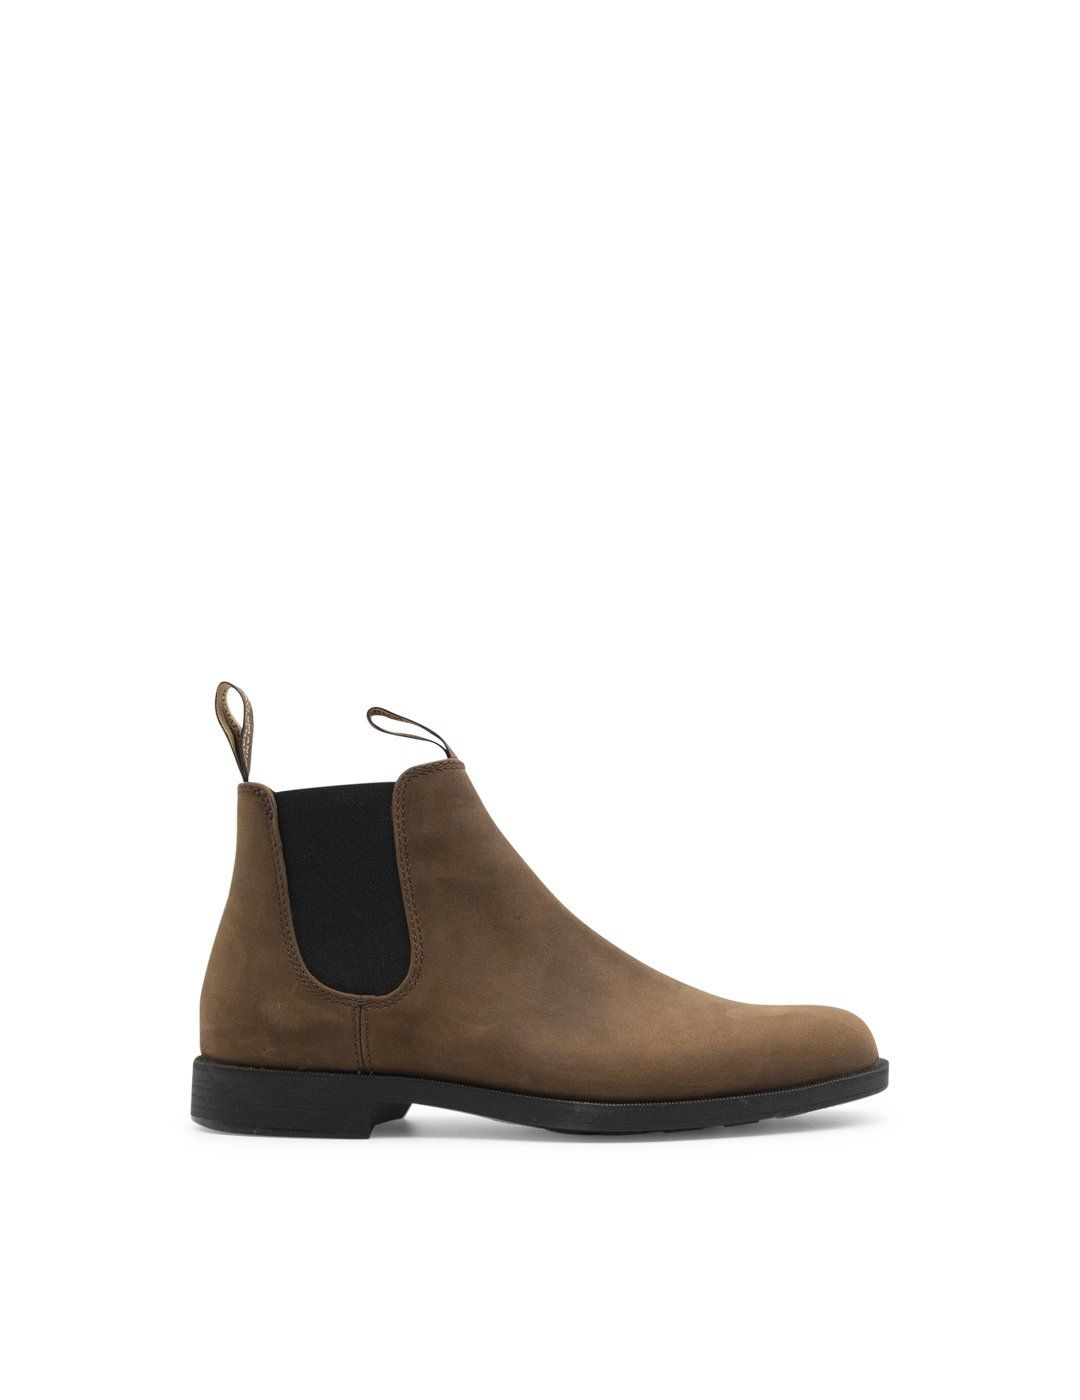 Blundstone BLUNDSTONE MEN'S 2026BROWN BROWN LEATHER ANKLE BOOTS